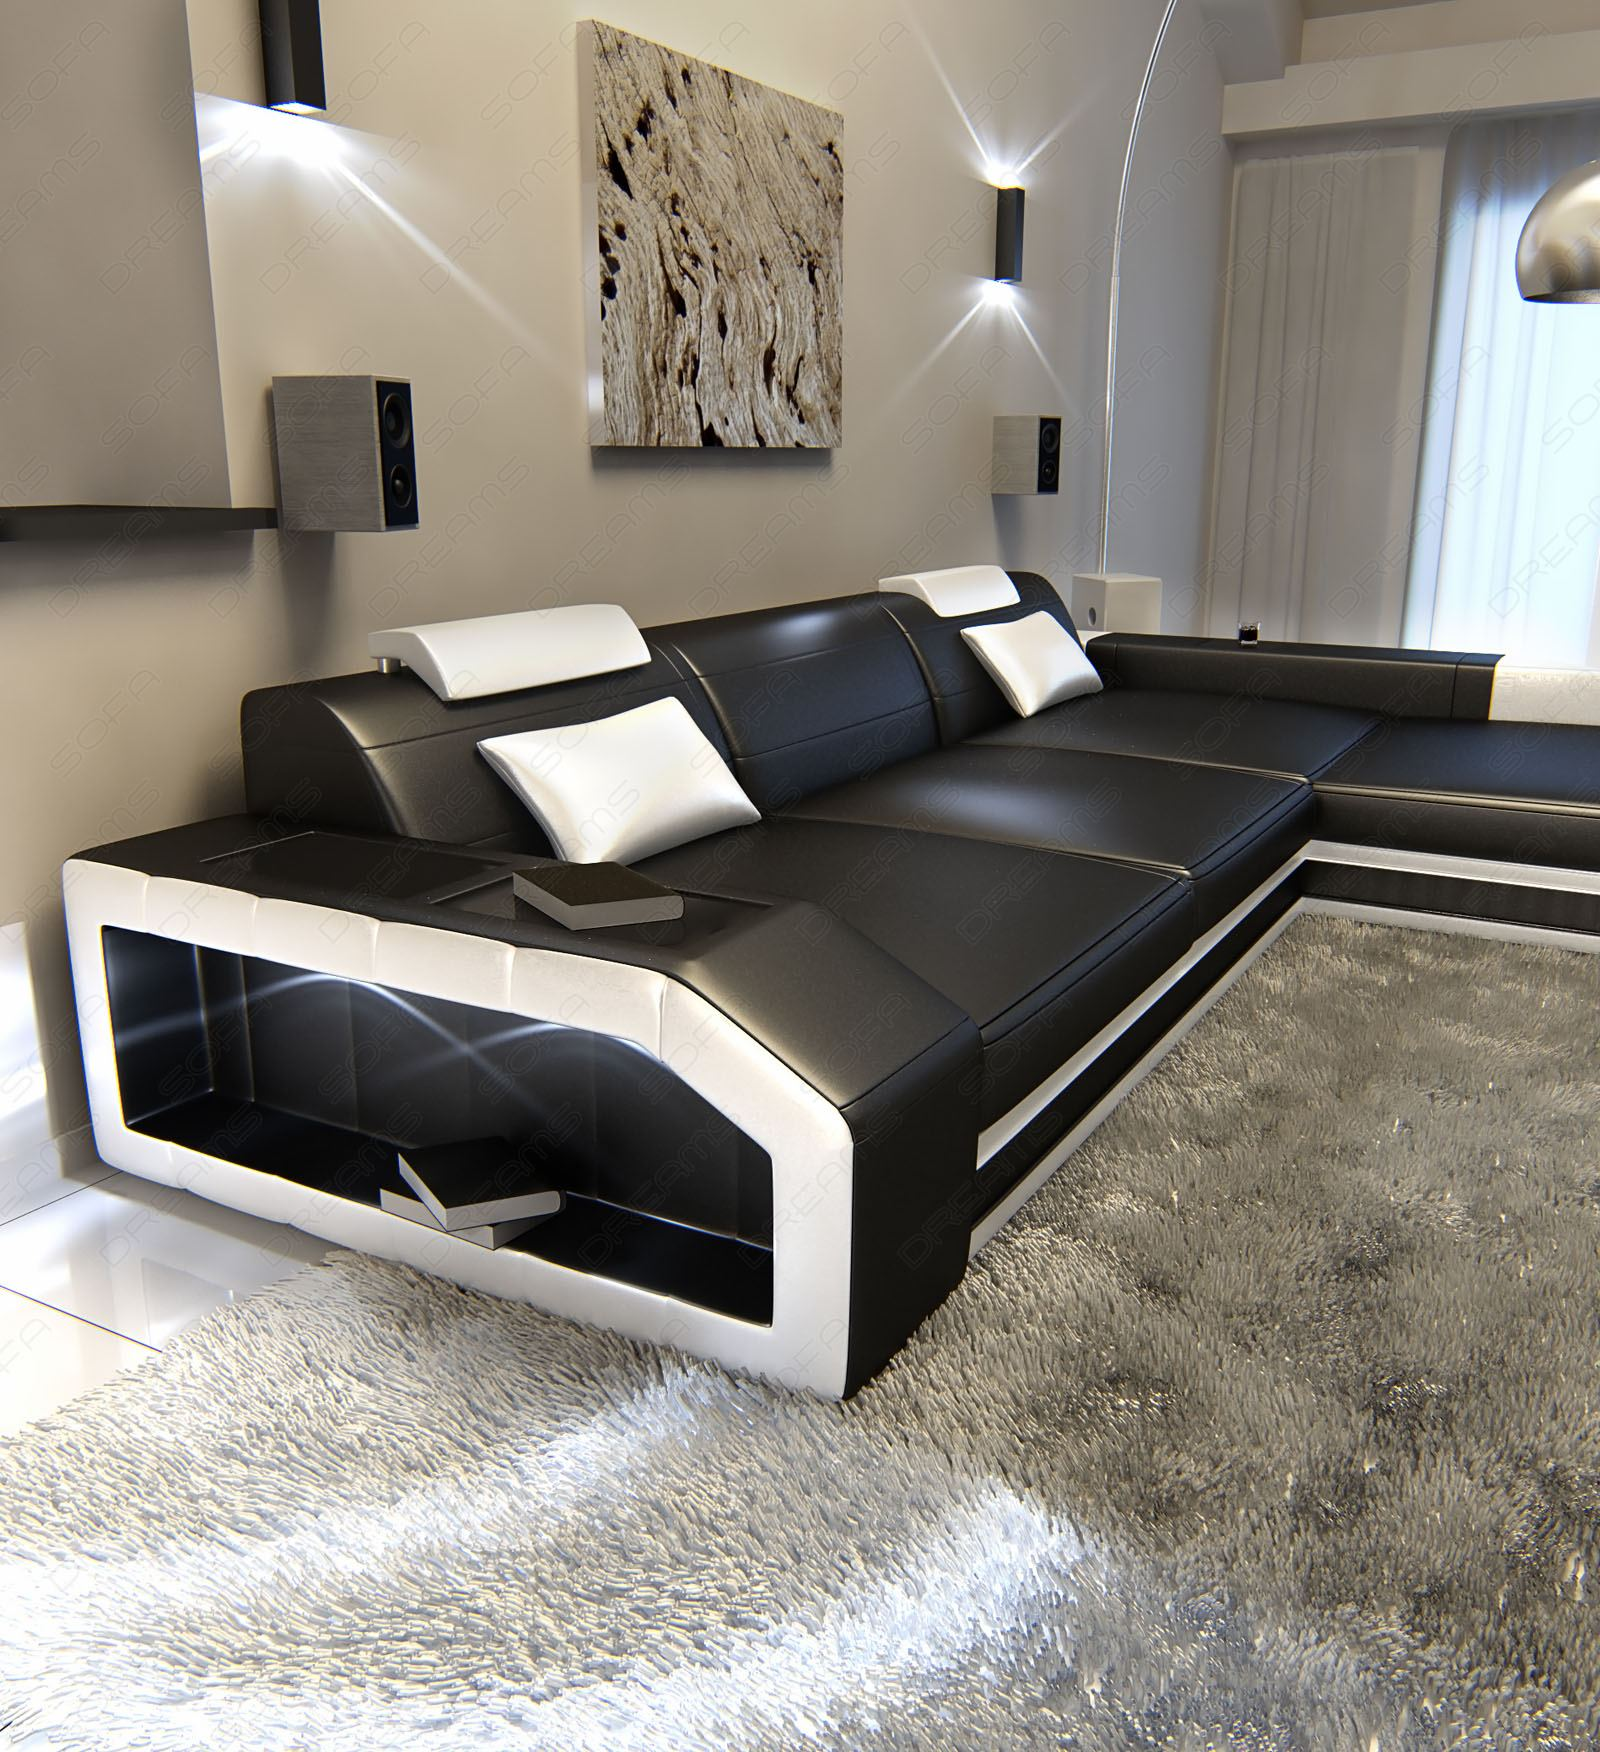 Wohnlandschaft l form  Modern L-Shaped Sofa PRATO with LED Lights Leathersofa black white ...